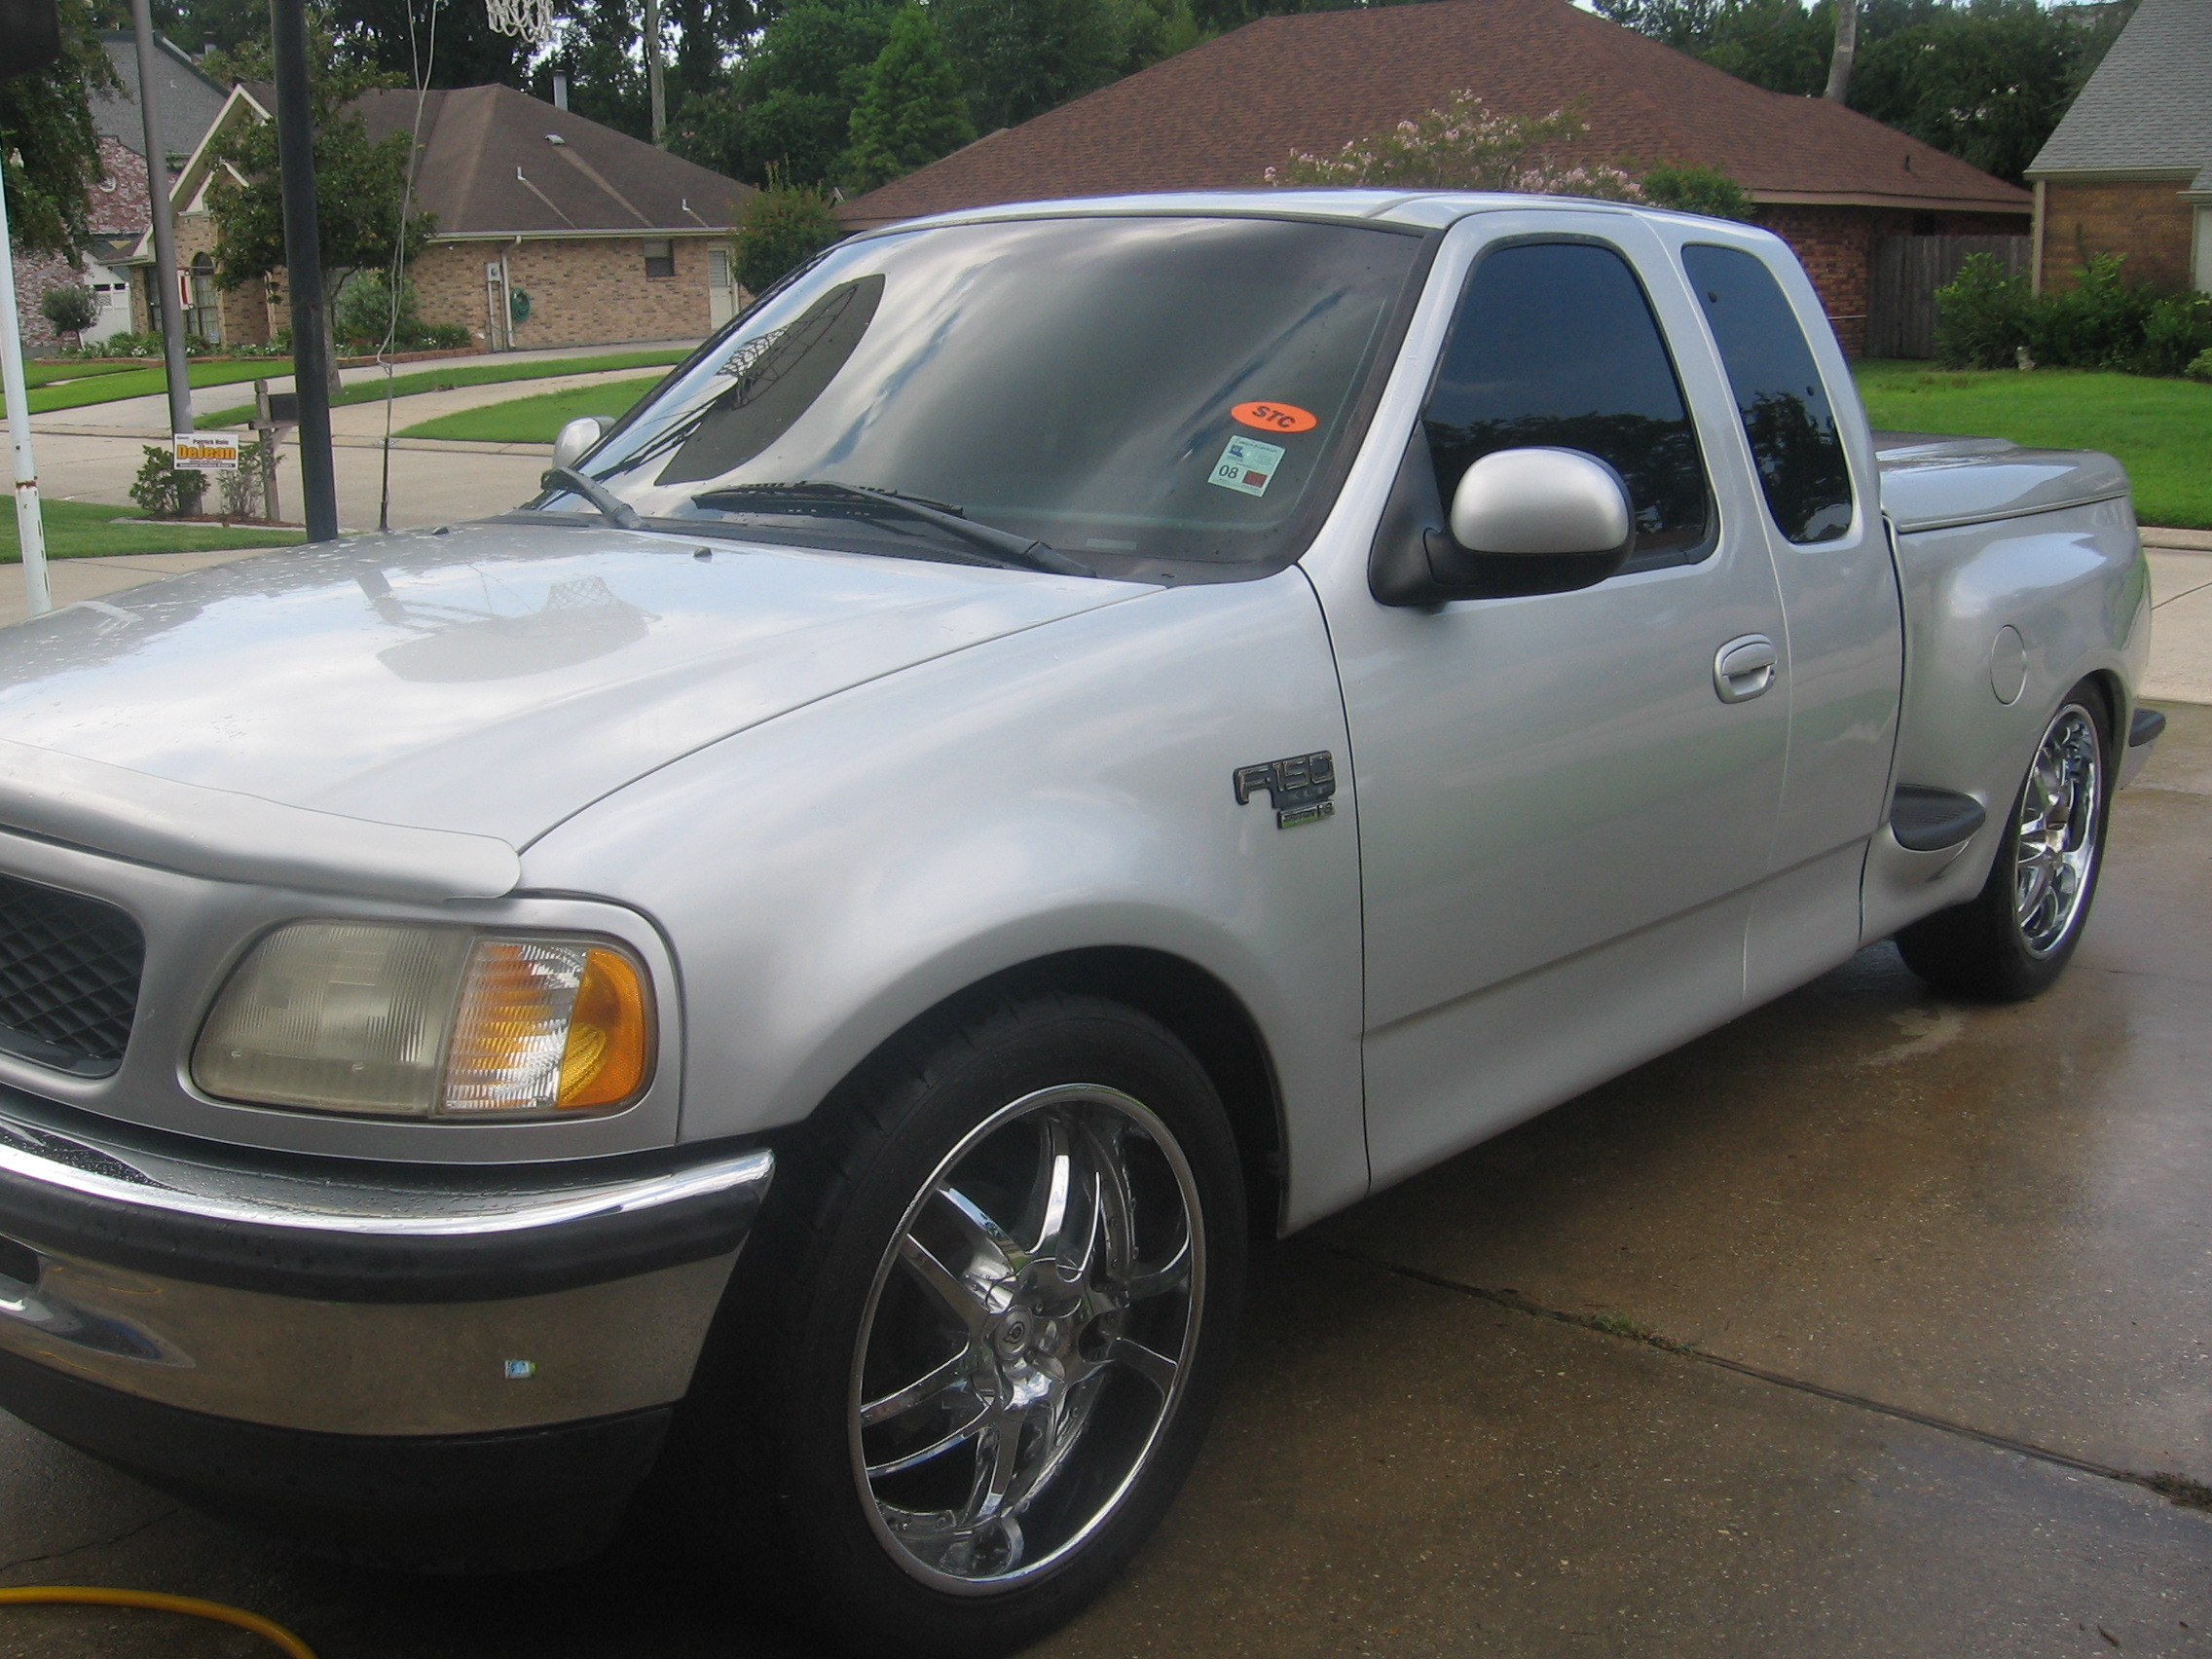 Shelby F150 For Sale >> dropurs 1998 Ford F150 Regular Cab Specs, Photos, Modification Info at CarDomain